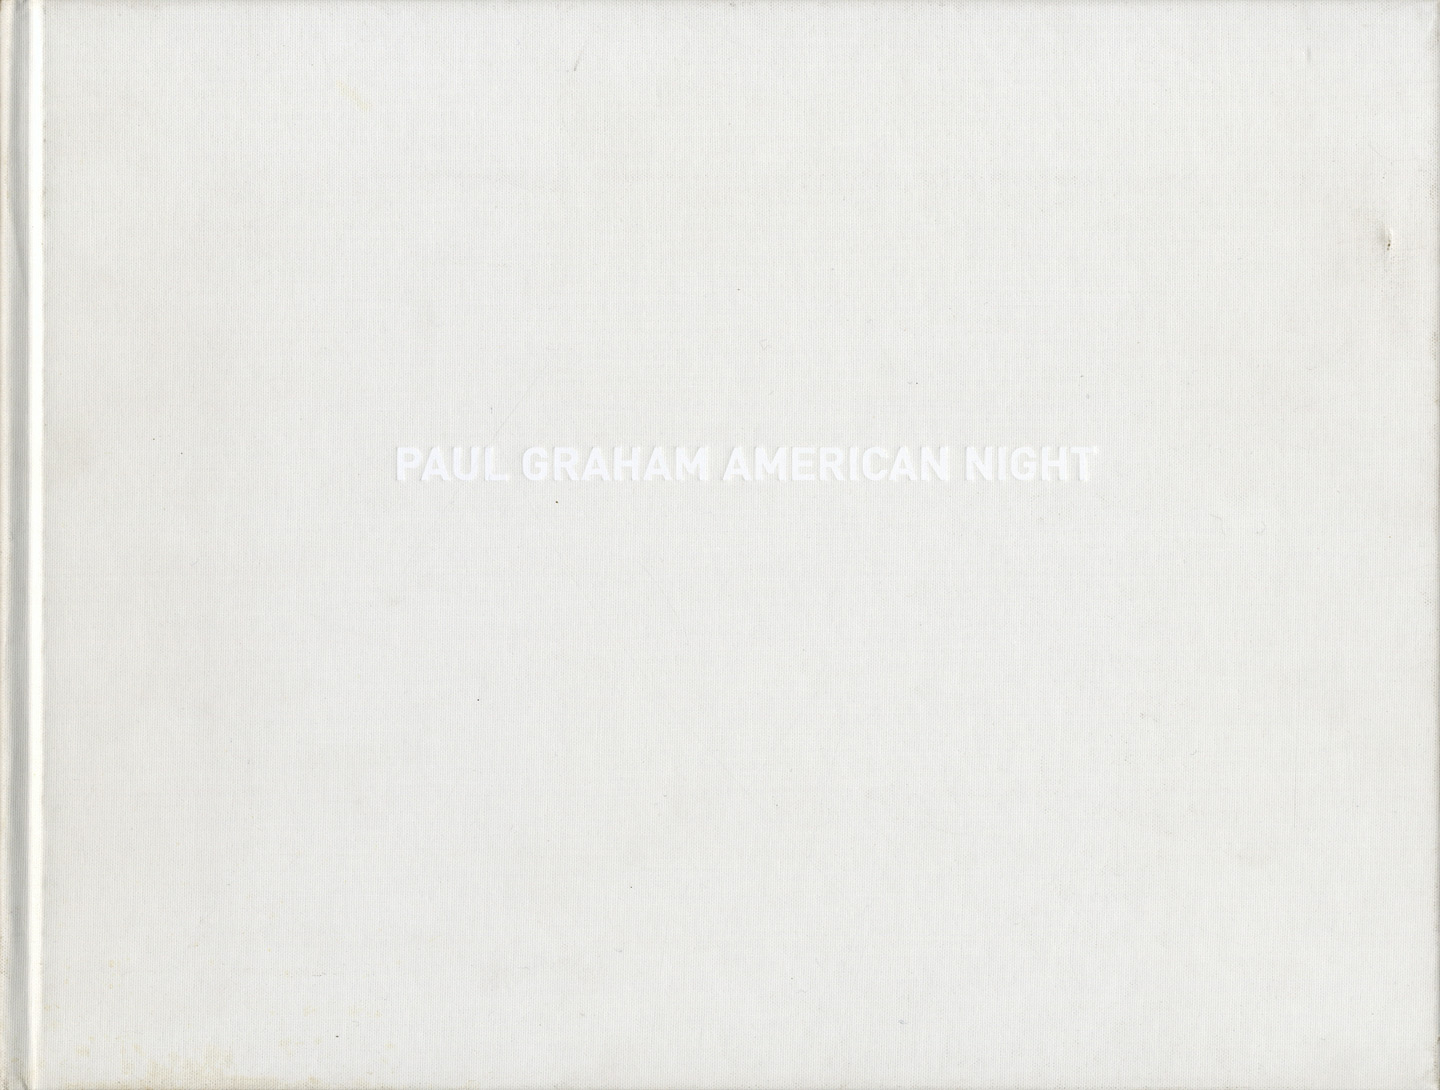 Paul Graham: American Night [SIGNED]